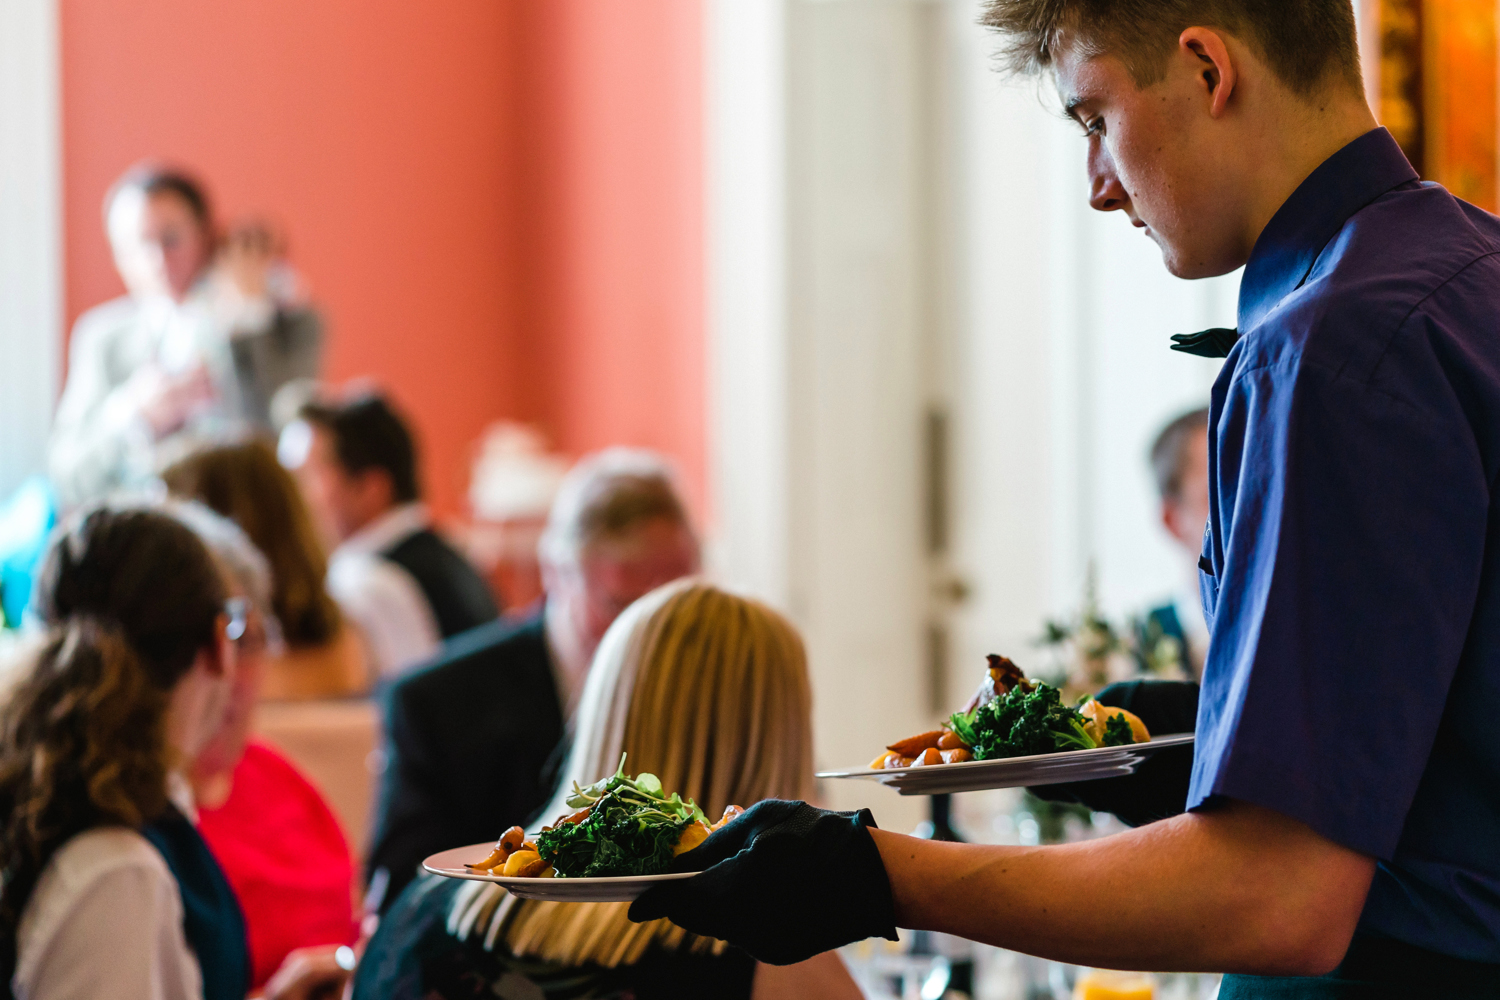 smallpeice catering at penton park